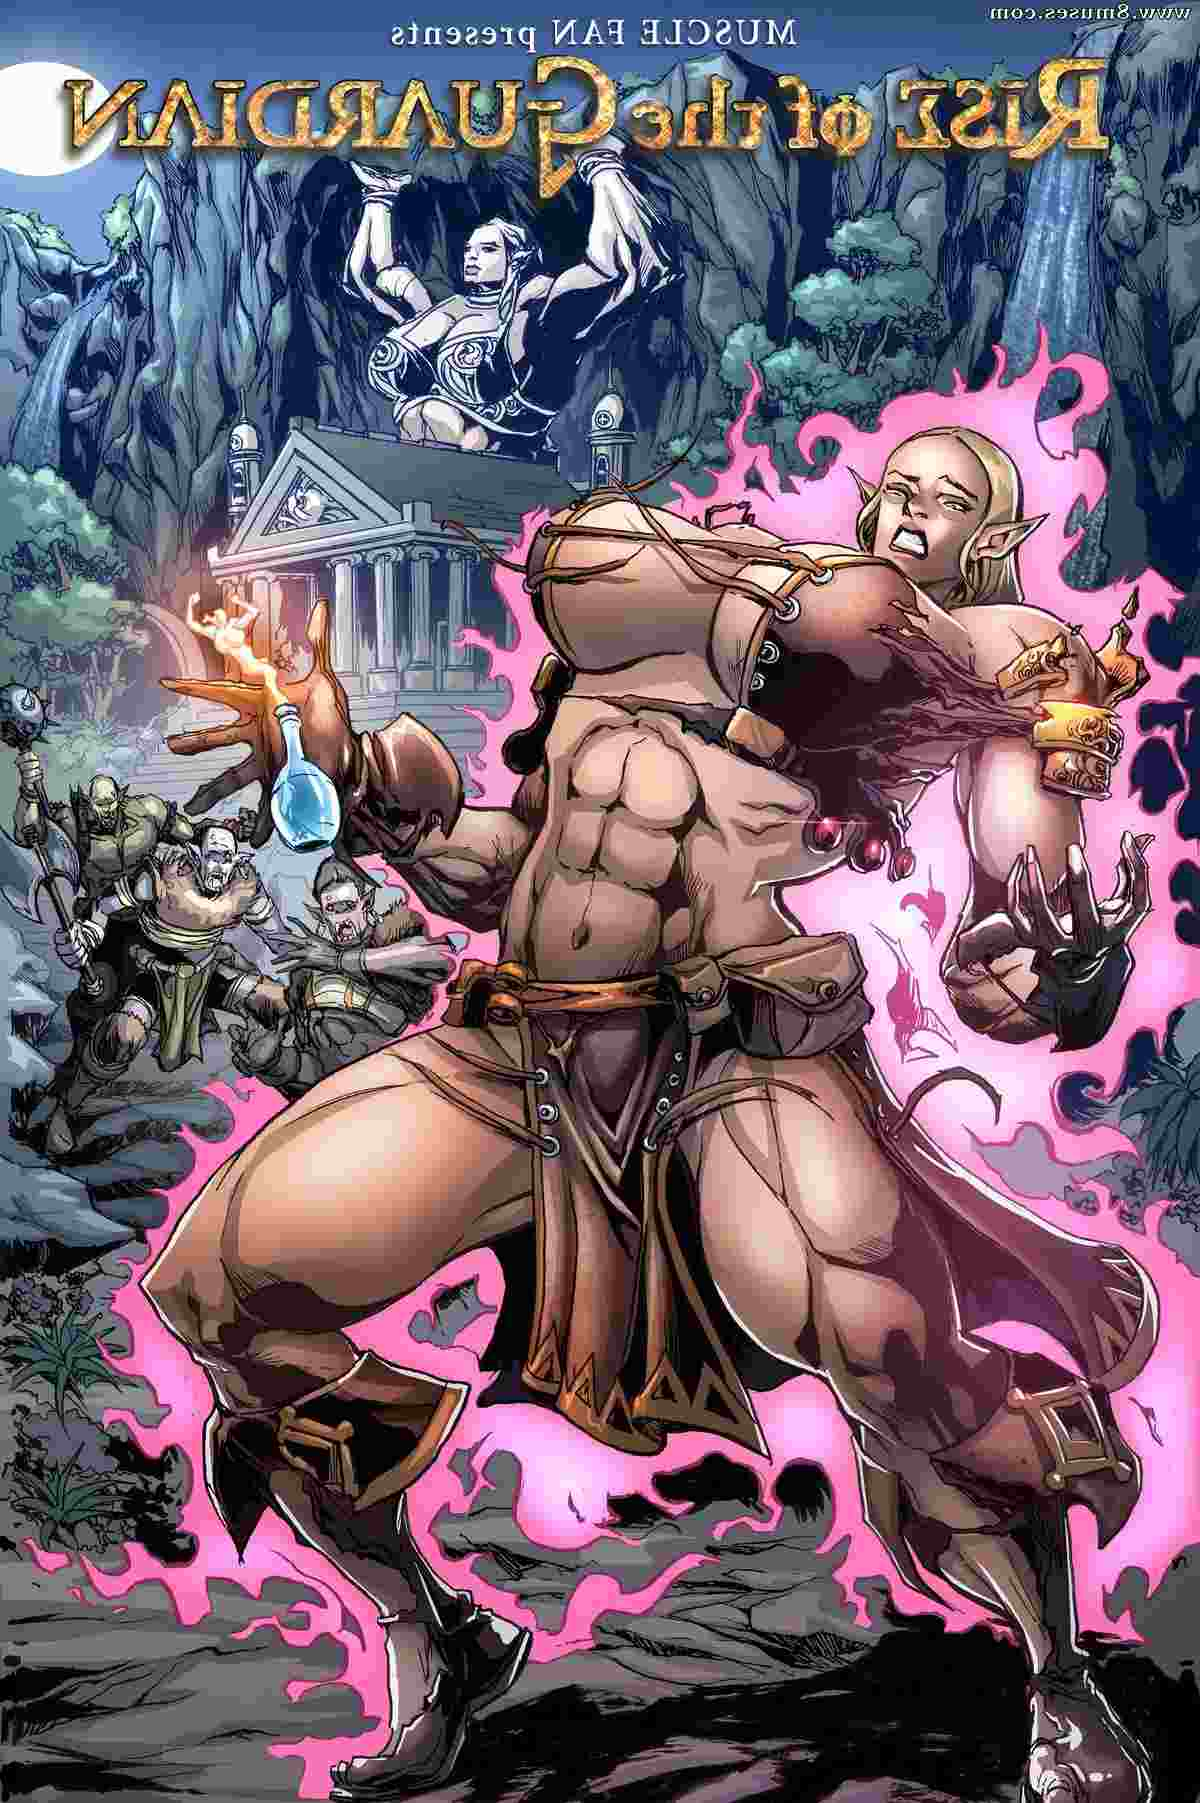 MuscleFan-Comics/Rise-of-the-Guardian Rise_of_the_Guardian__8muses_-_Sex_and_Porn_Comics.jpg